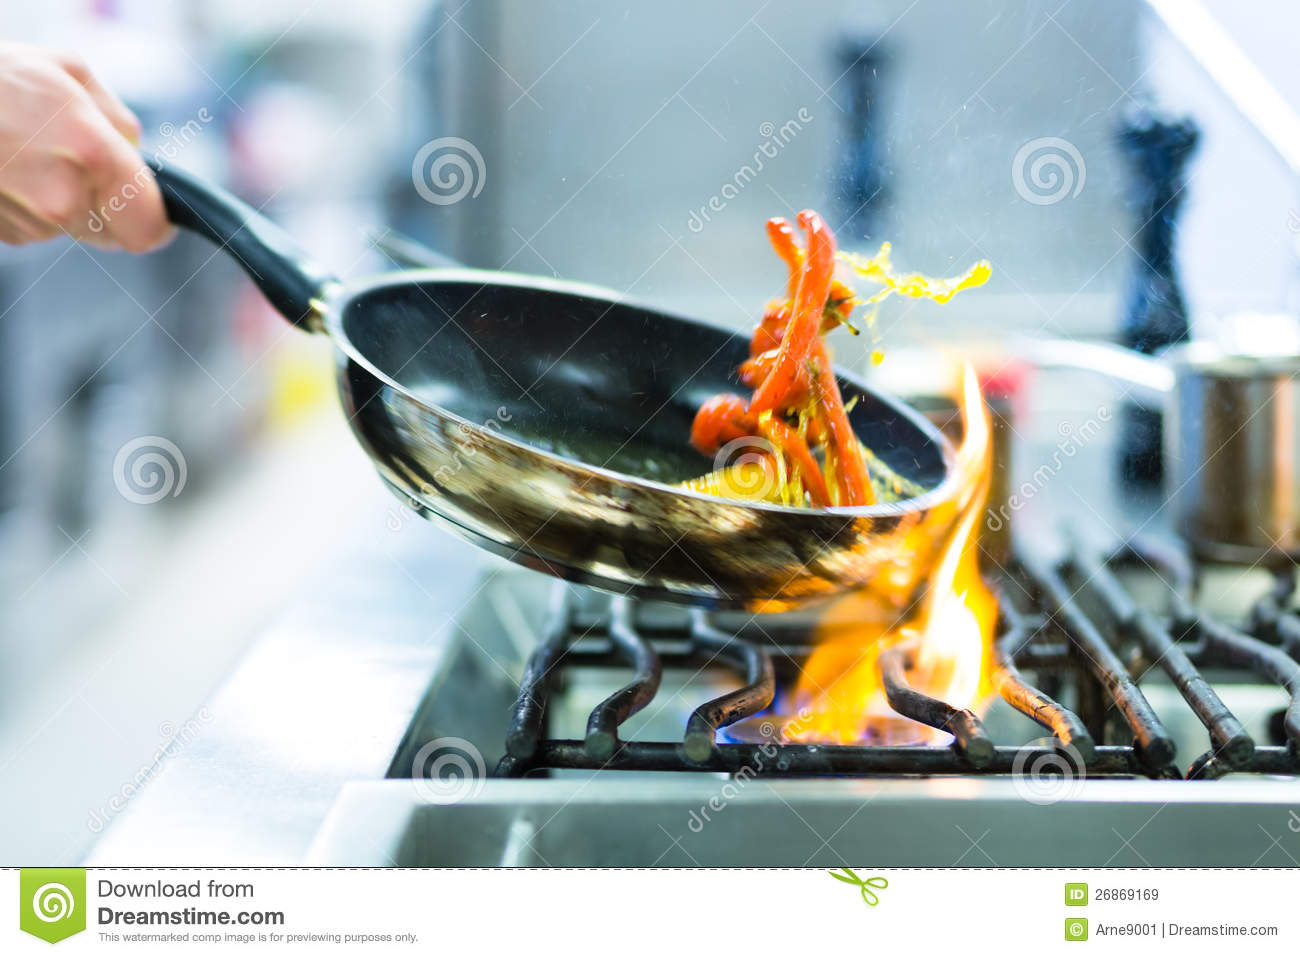 Restaurant Kitchen Photos chef stock photos, images, & pictures - 141,141 images